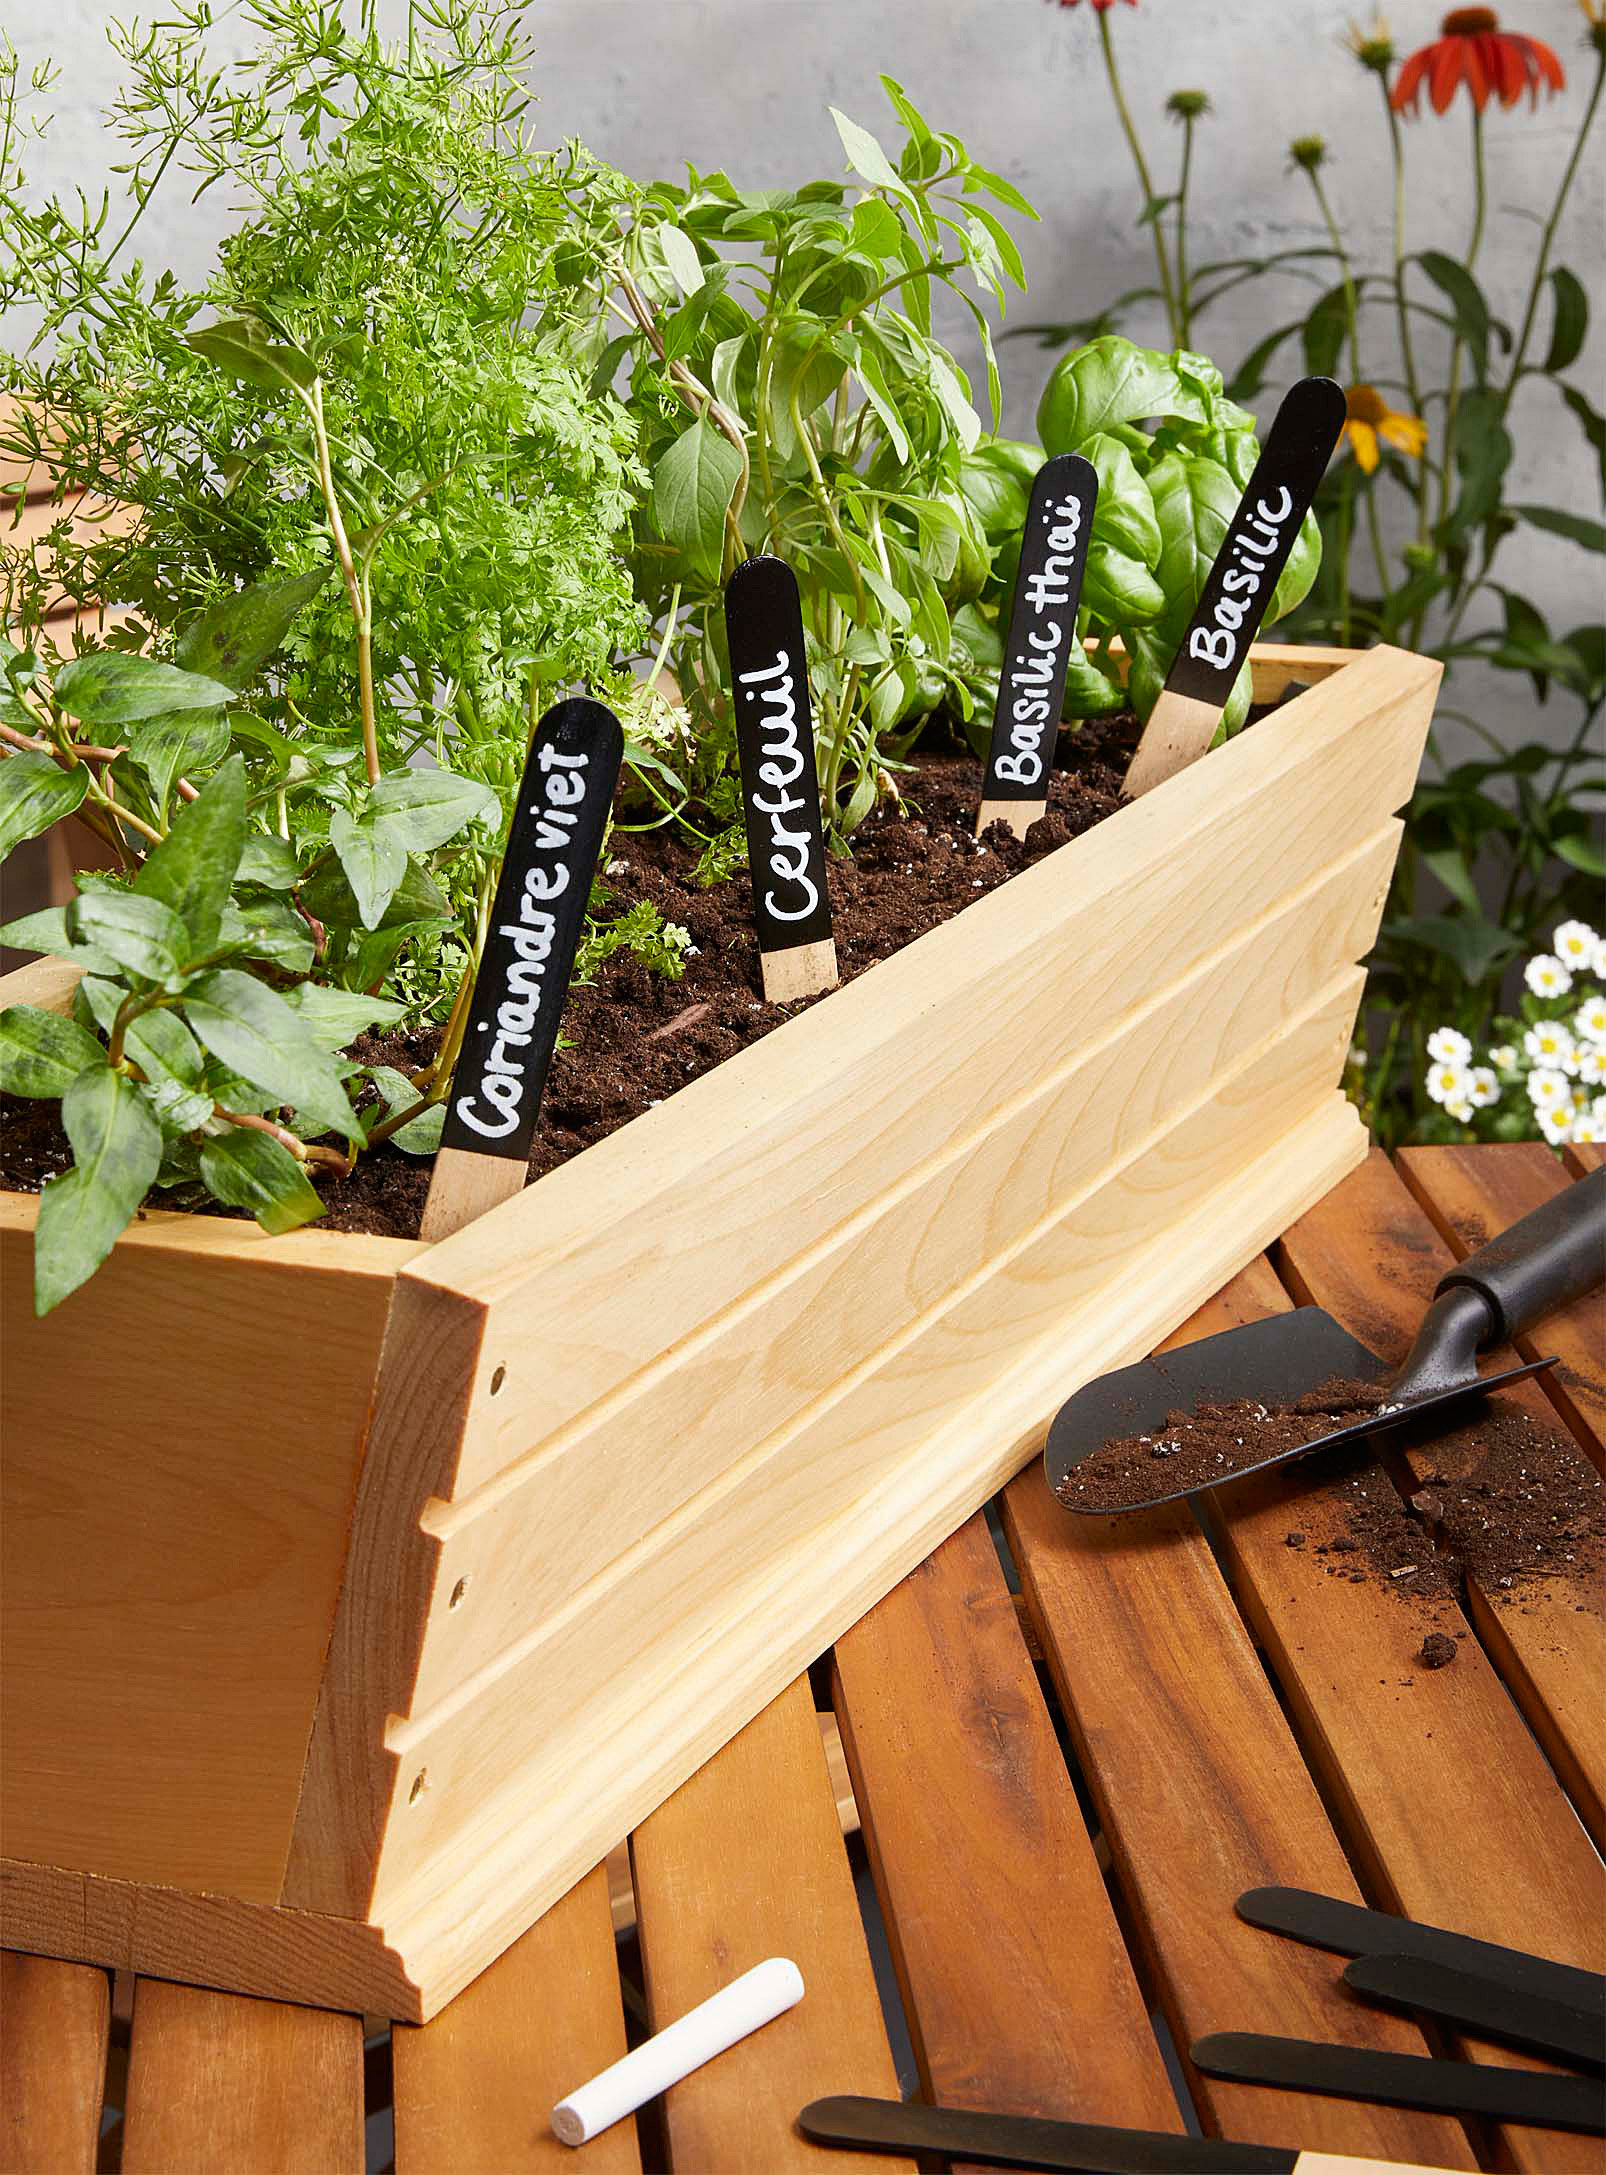 Four reusable garden markers in a flower box filled with plants